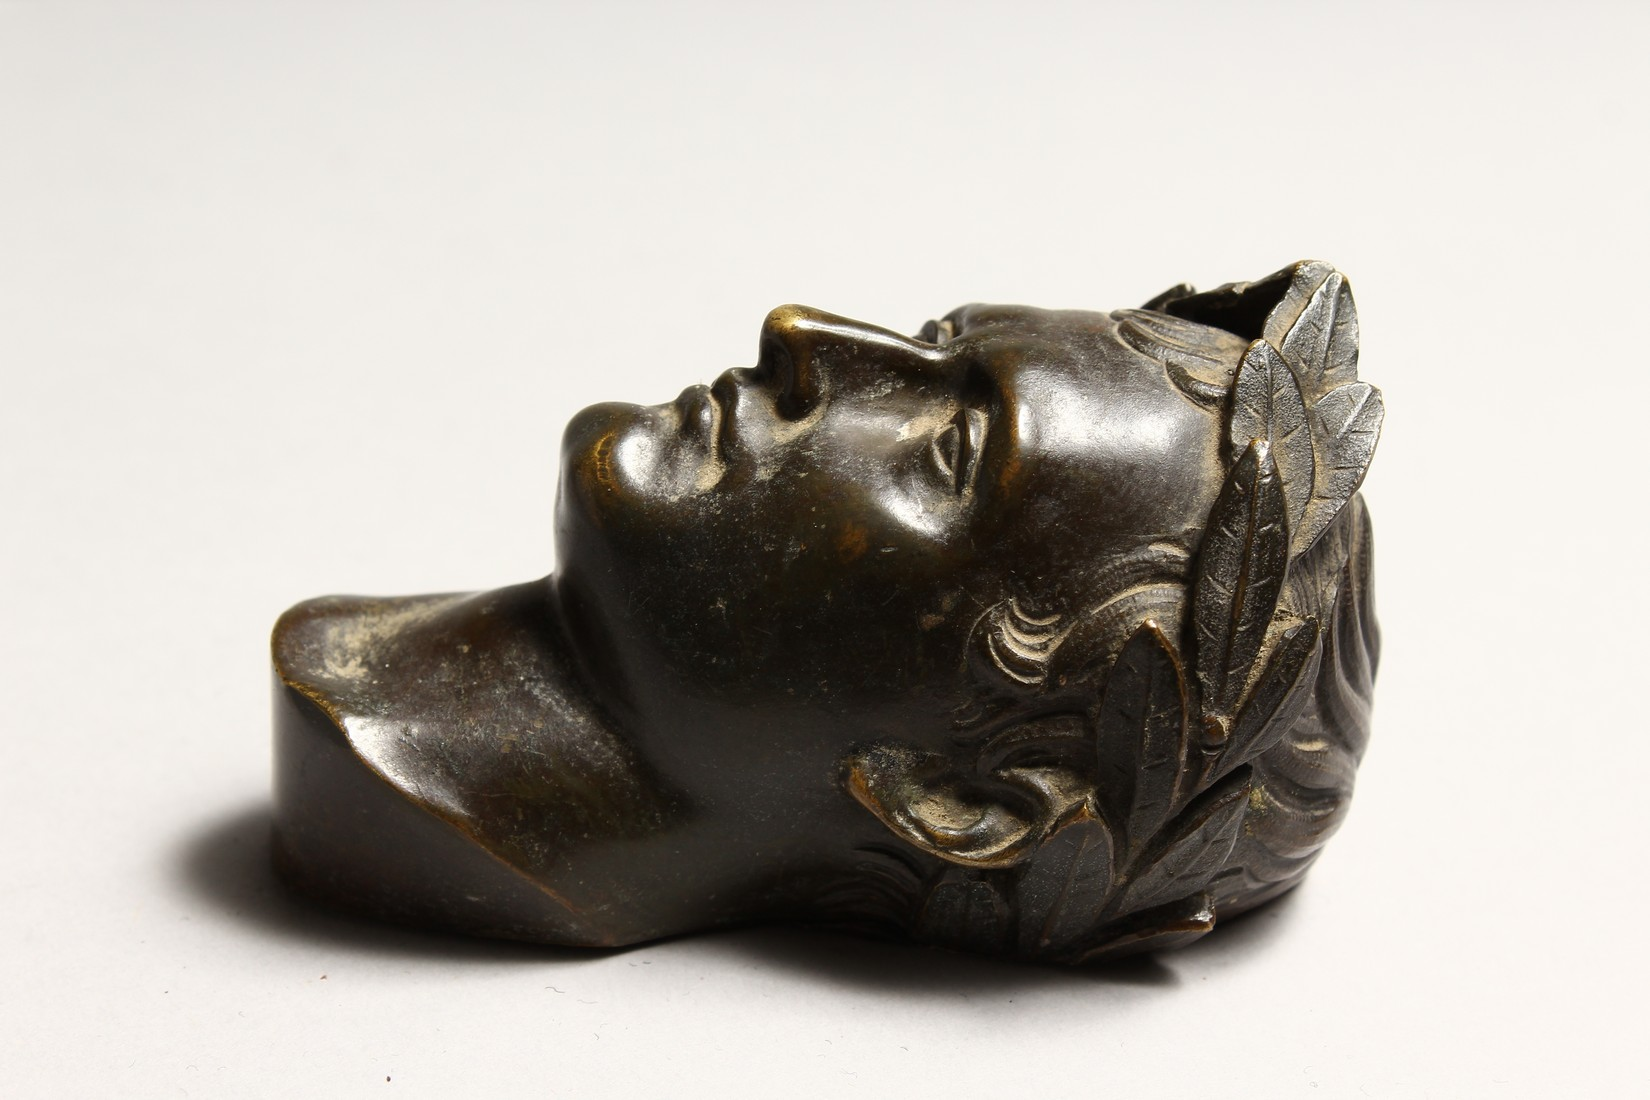 A SMALL GRAND TOUR BRONZE ROMAN HEAD 3.75ins high. - Image 2 of 5